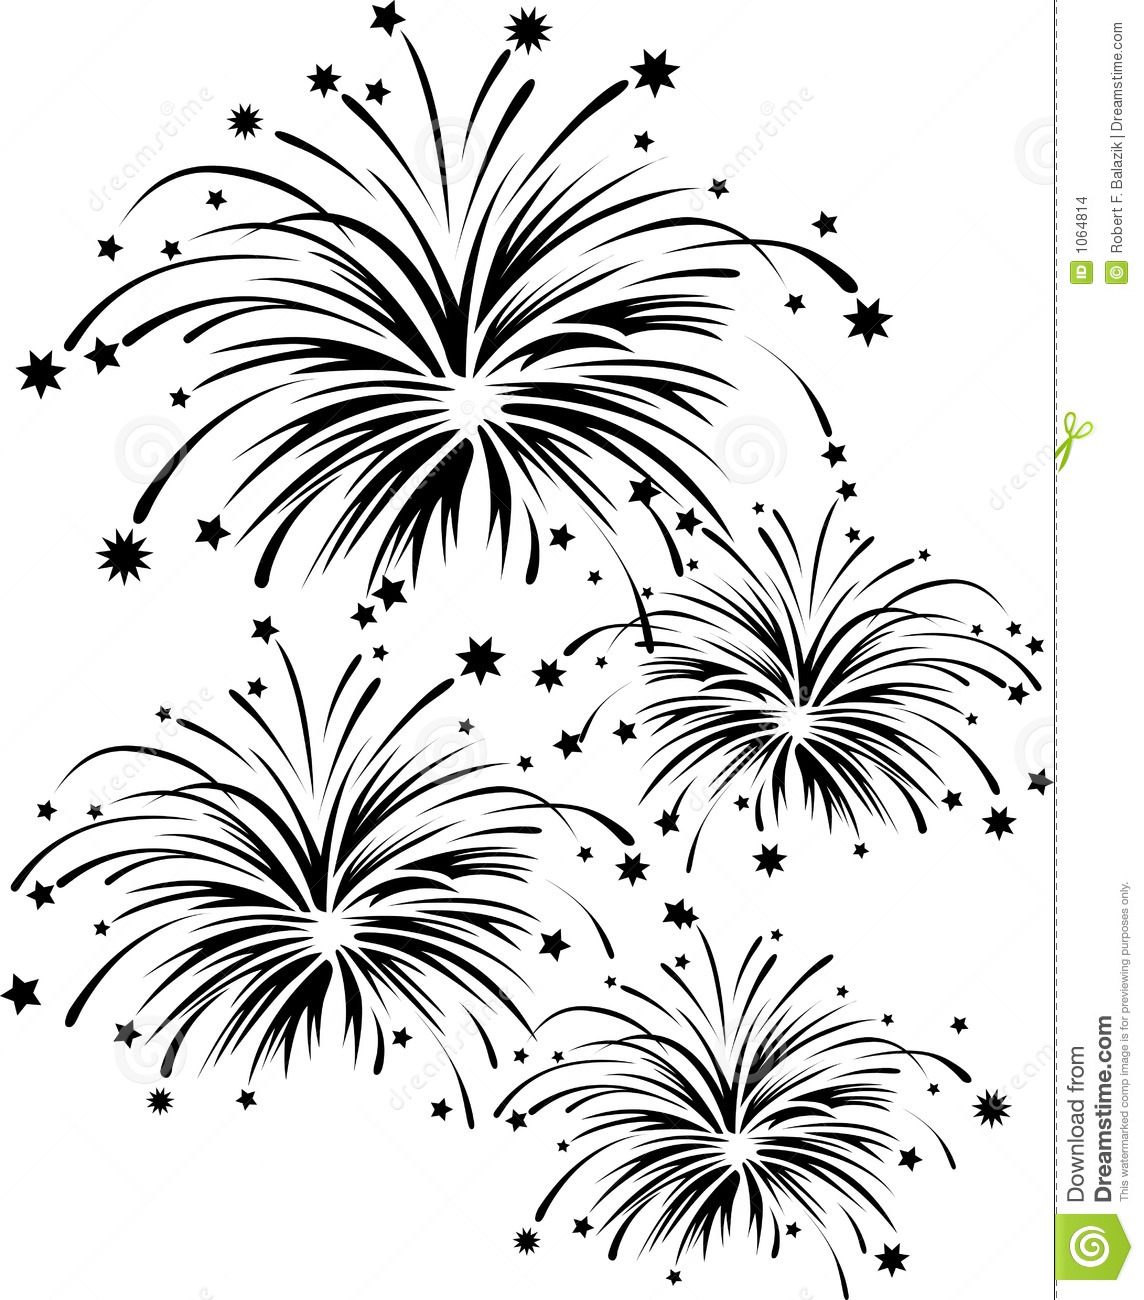 Fireworks Rocket Vector Graphic 1356878262943 likewise E7 85 99 E7 81 AB  E5 9C 96 E8 B1 A1 24753063 further New Year S Fireworks Cliparts moreover Stock Illustration Firework Icon Beautiful Black Single Abstract Isolated Image49731589 further 156996. on fireworks silhouette